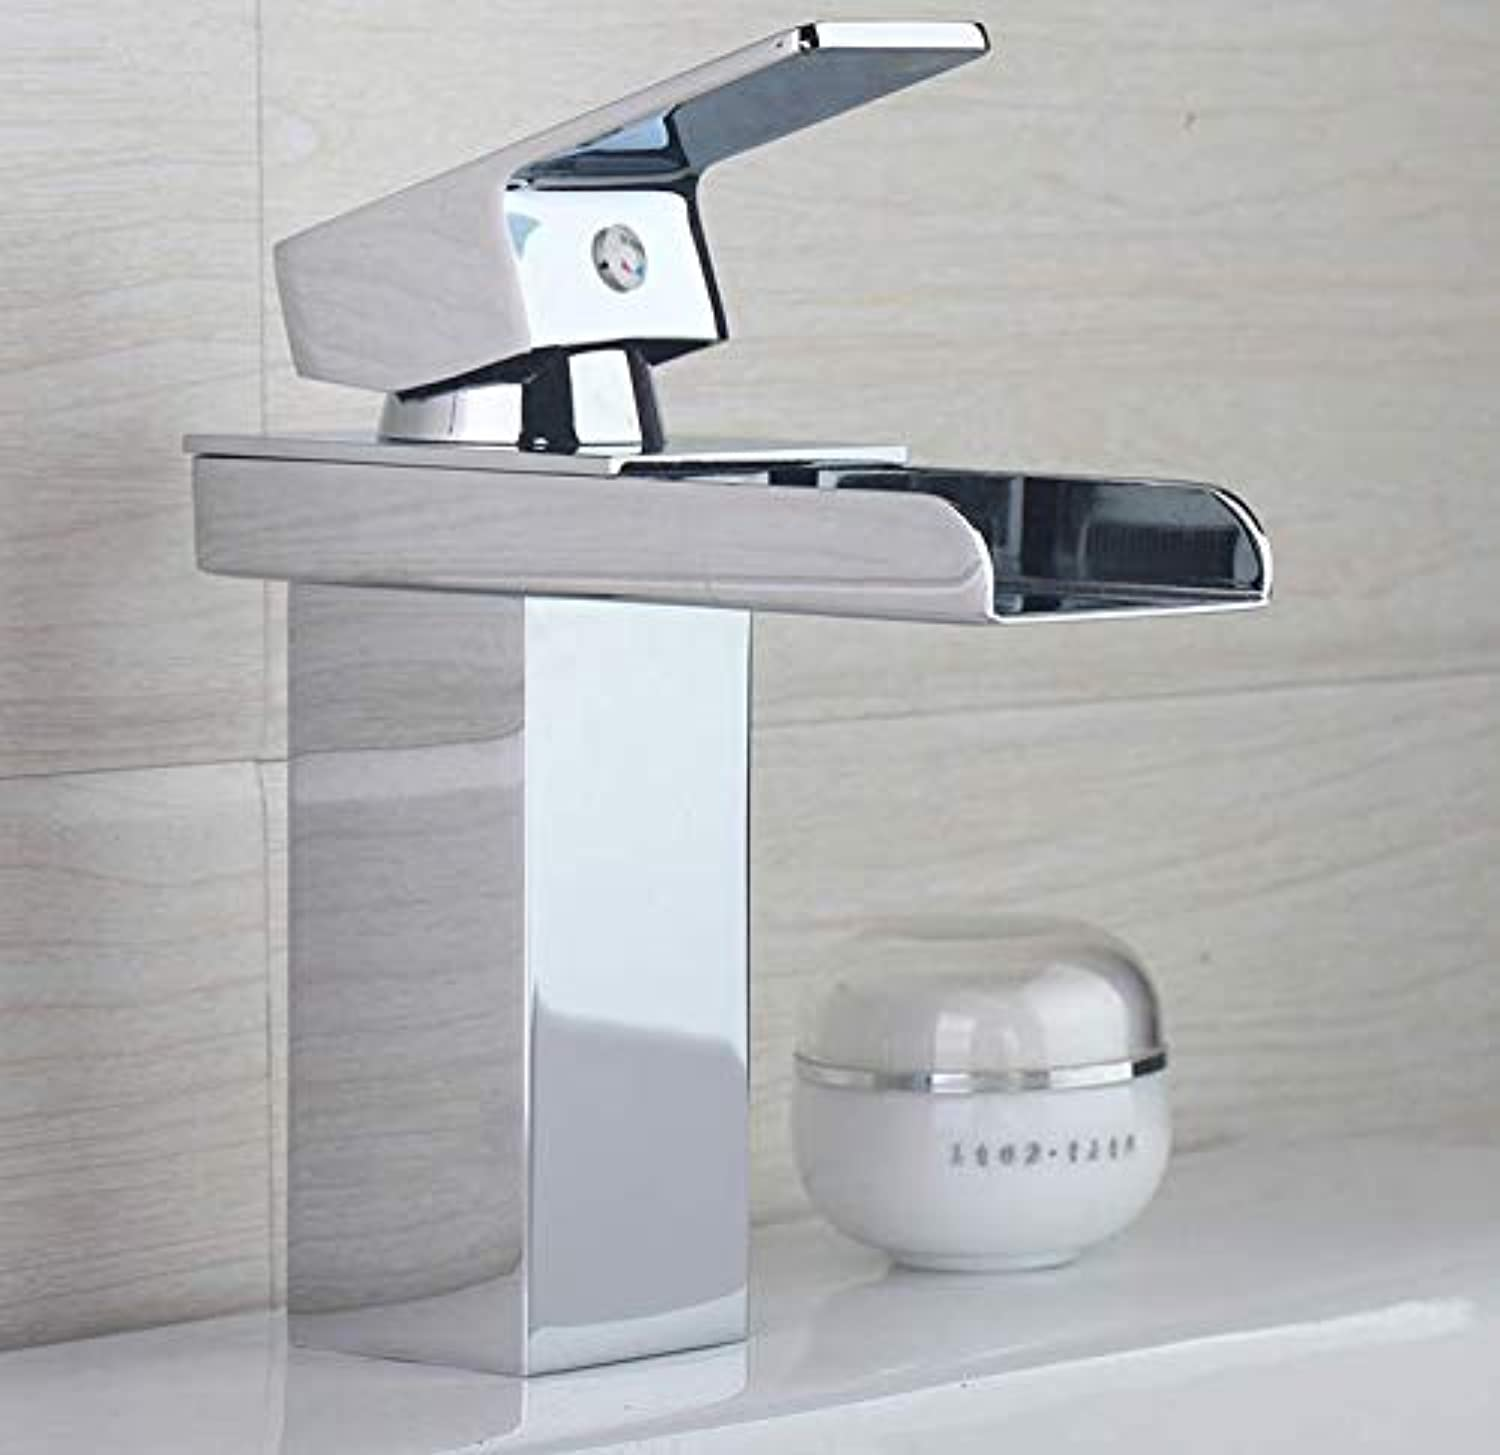 Bathroom Faucet Bathroom Faucets Waterfall Chrome Polish Basin Taps Hot and Cold Water Bathroom Sink Tap Mixer Faucet